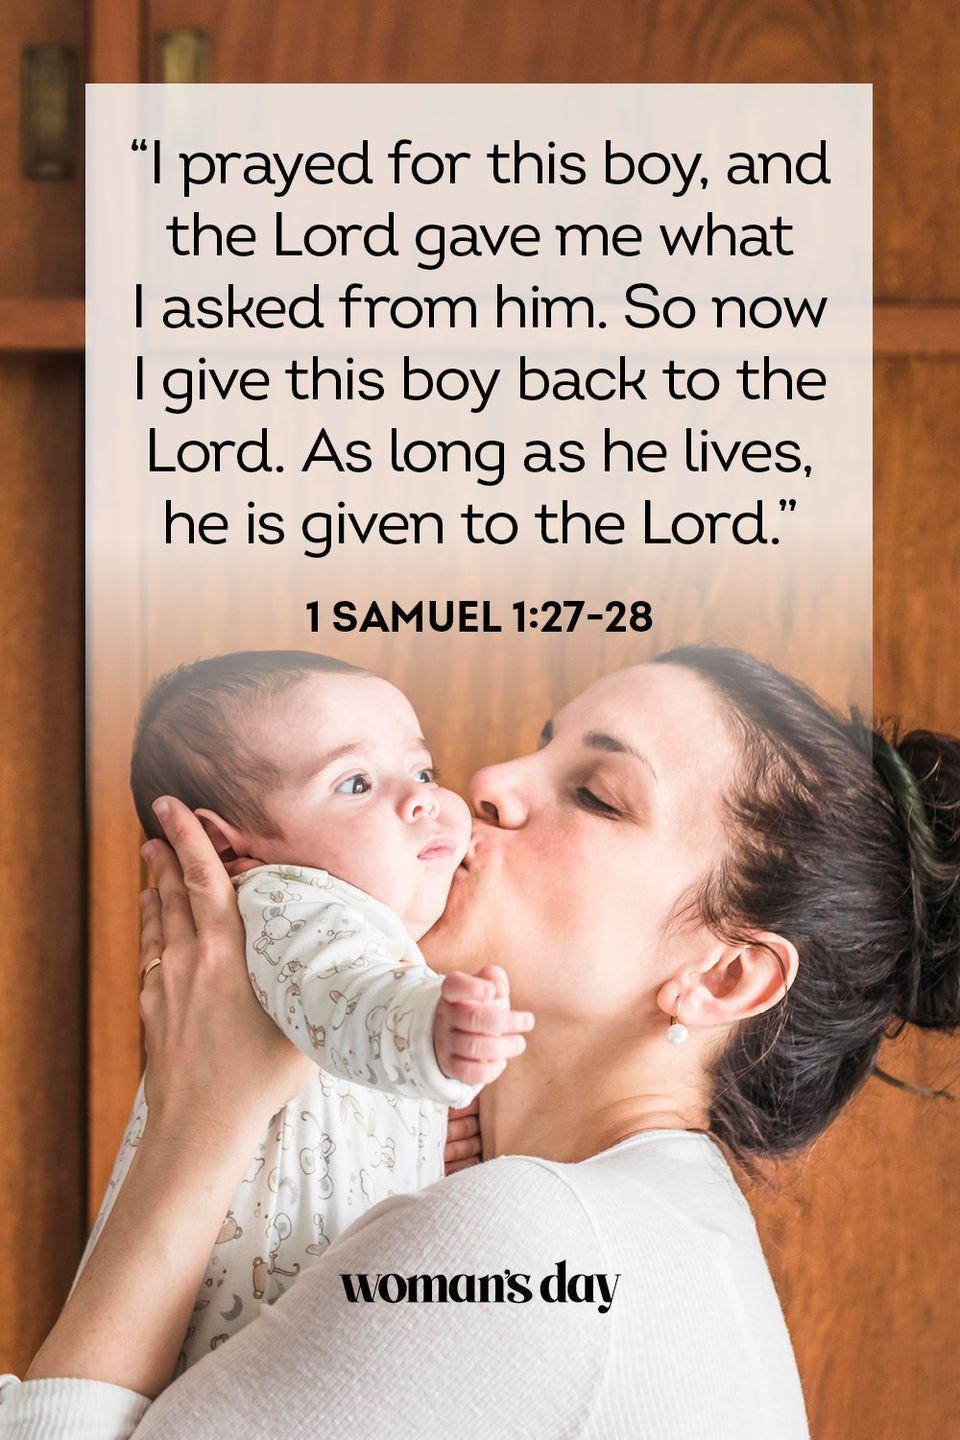 "<p>""I prayed for this boy, and the Lord gave me what I asked from him. So now I give this boy back to the Lord. As long as he lives, he is given to the Lord.""</p><p><strong>The Good News: </strong>Children are a reward from God, so they should be raised and nurtured as the Lord intended. </p>"